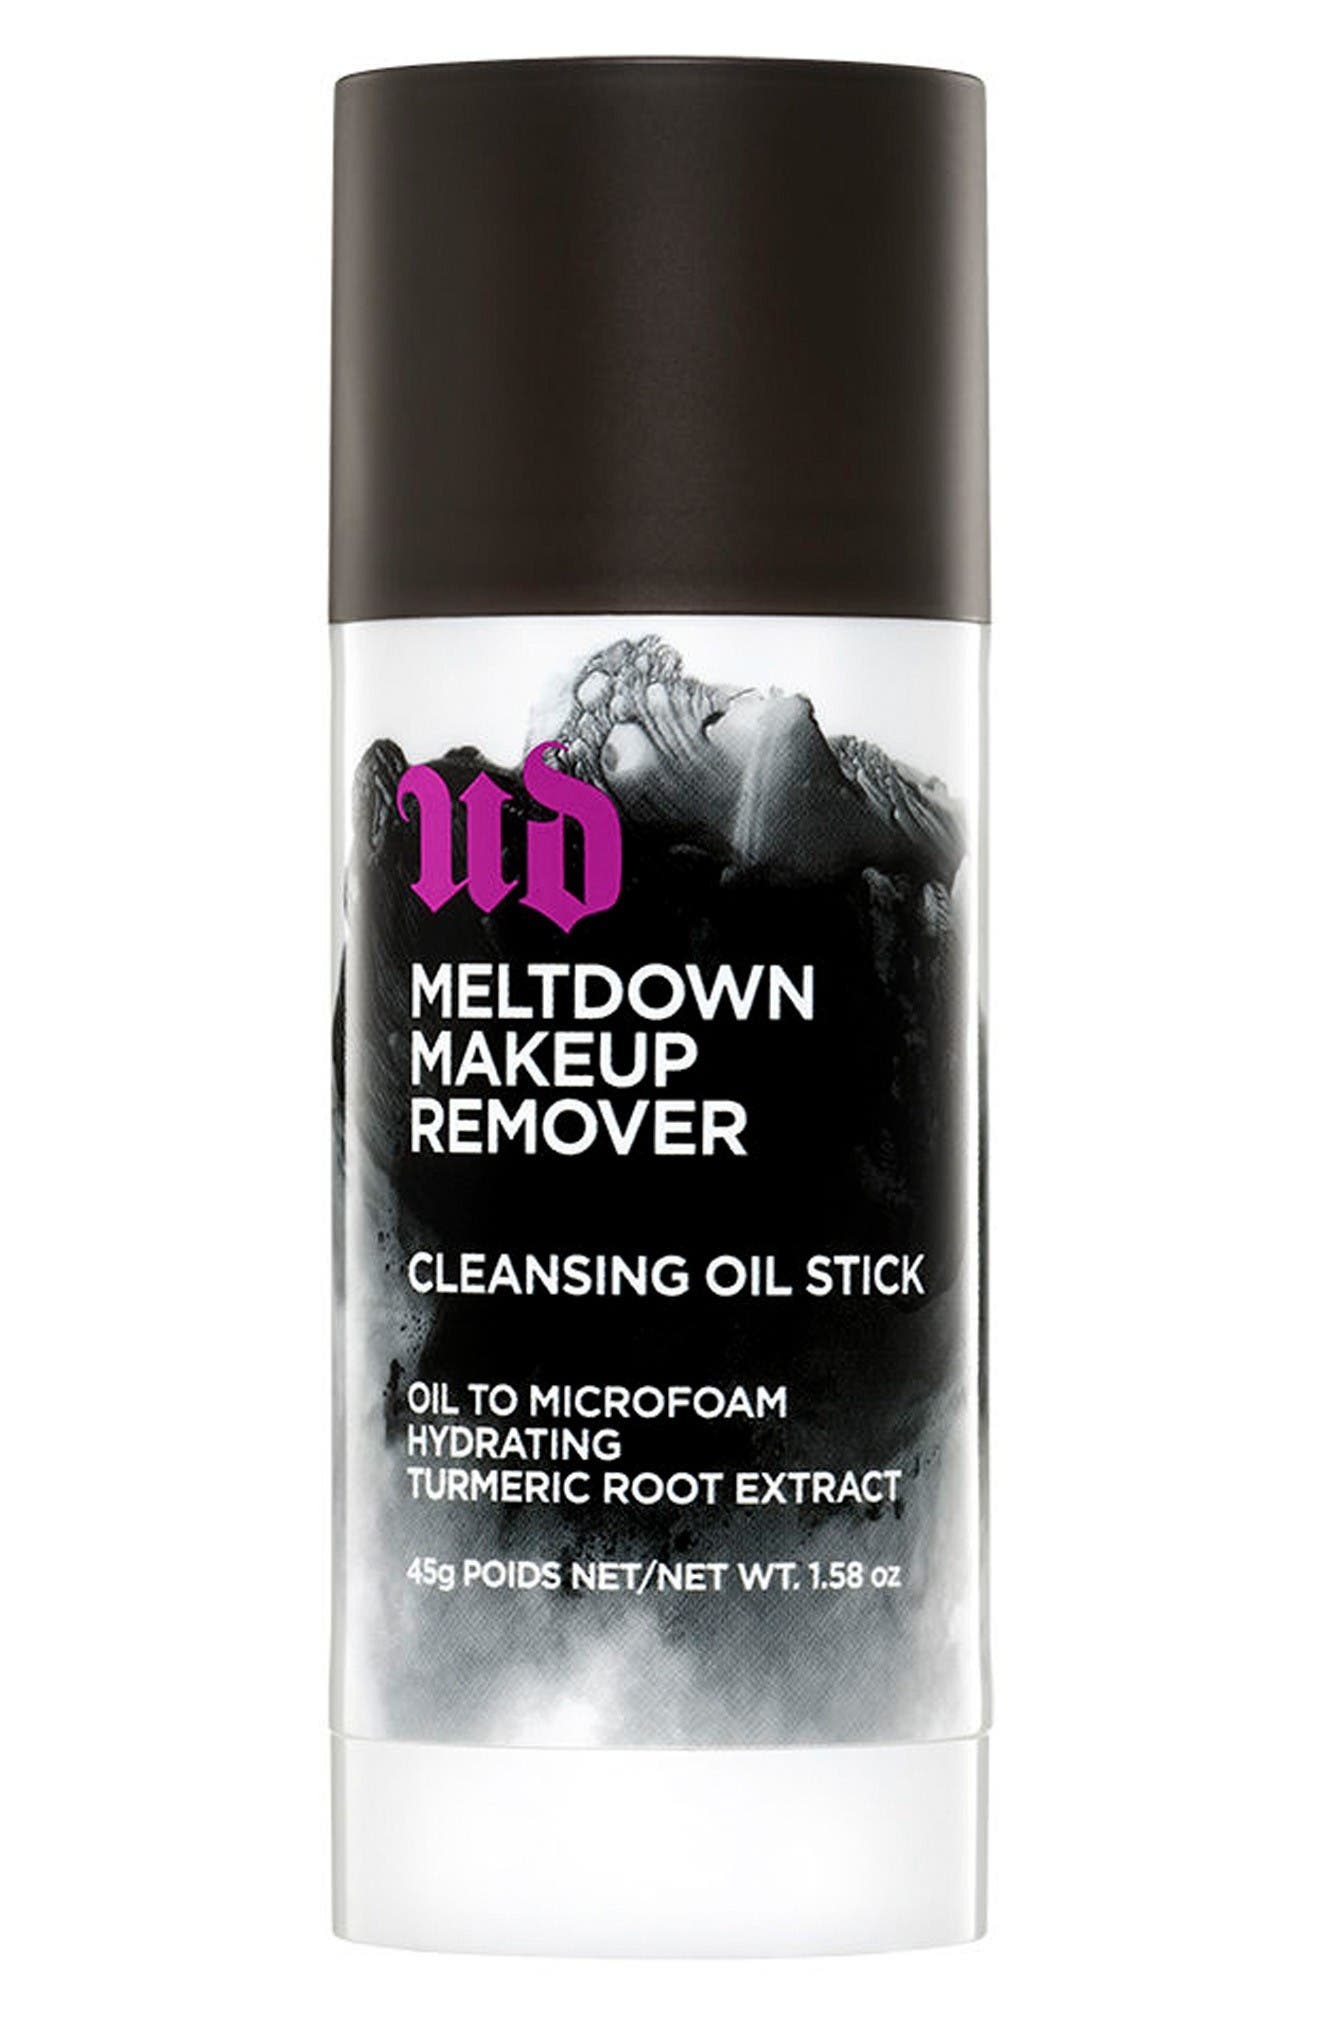 Alternate Image 1 Selected - Urban Decay Meltdown Makeup Remover Cleansing Oil Stick